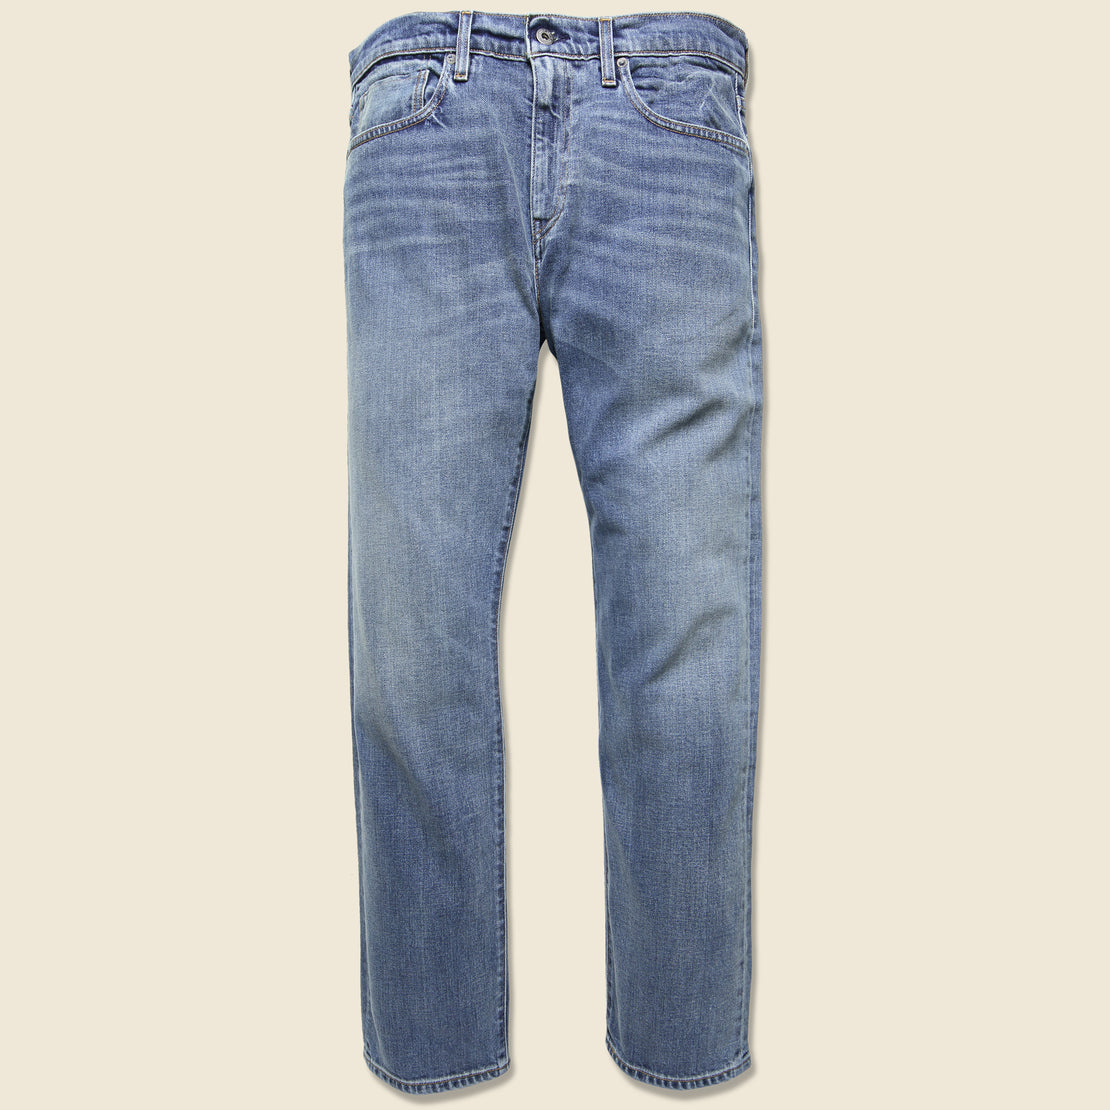 Levis Made & Crafted 502 Taper Jean - Murphy